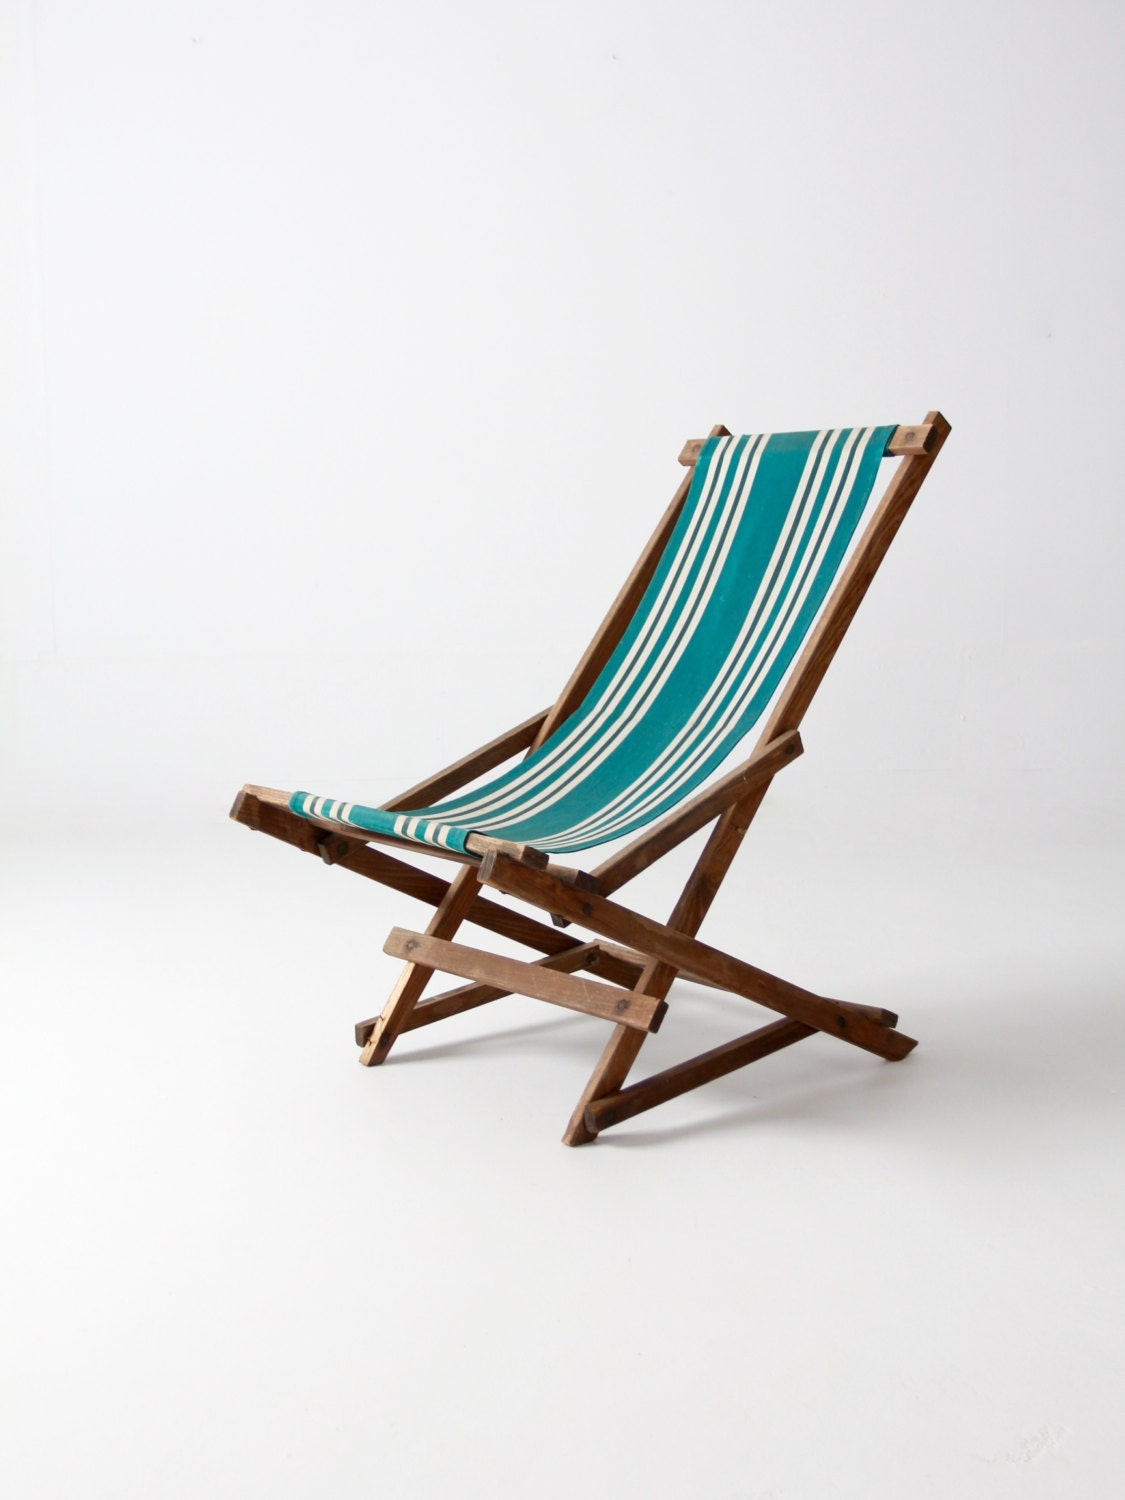 Vintage Striped Deck Chair Rocking Deck Chair Folding Beach